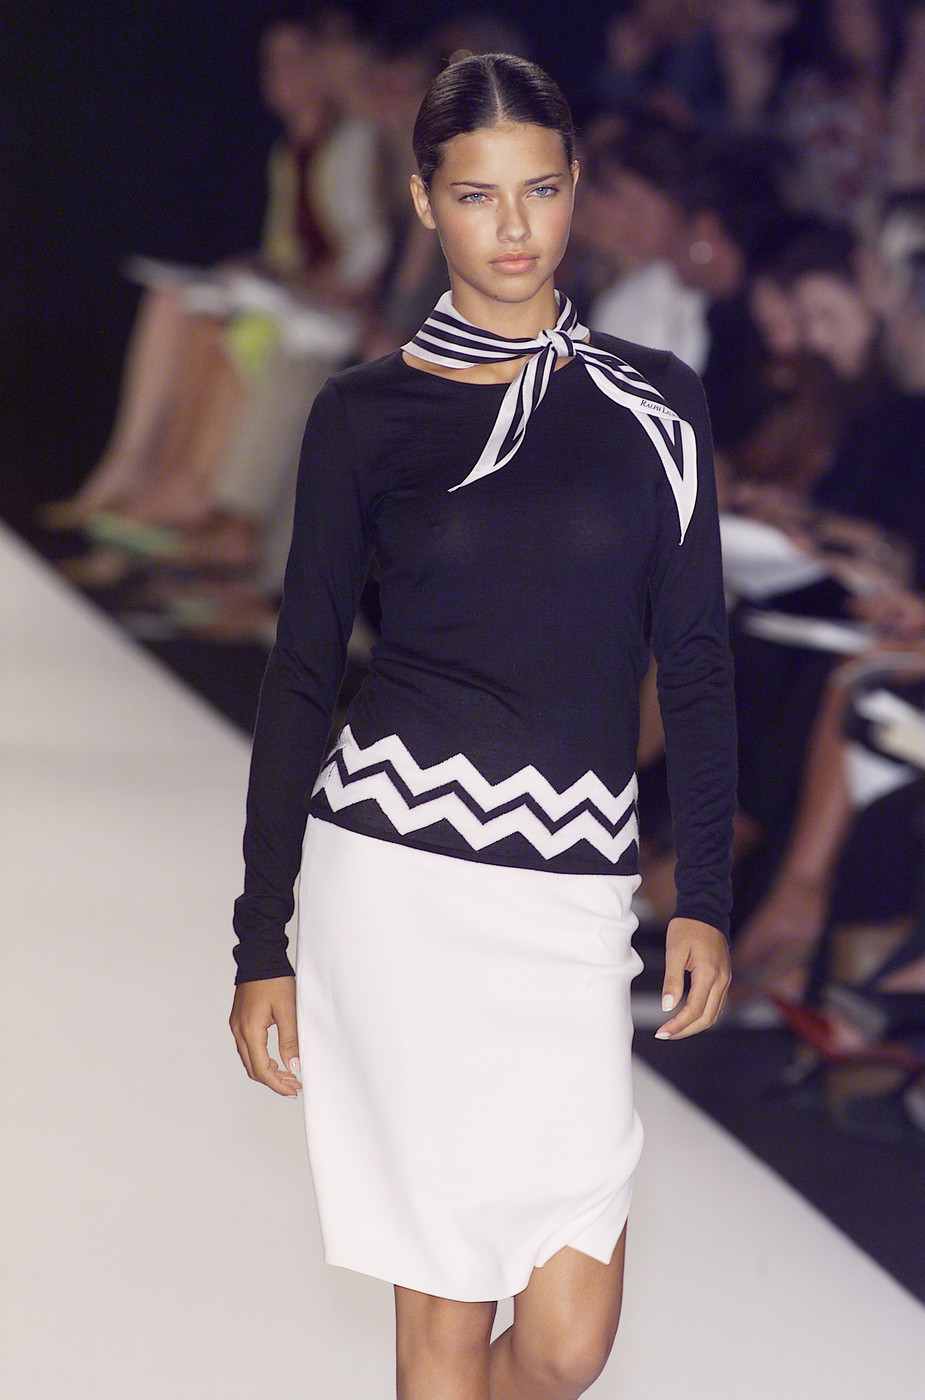 Ralph lauren at new york fashion week spring 2001 livingly for Ralph lauren nyc office